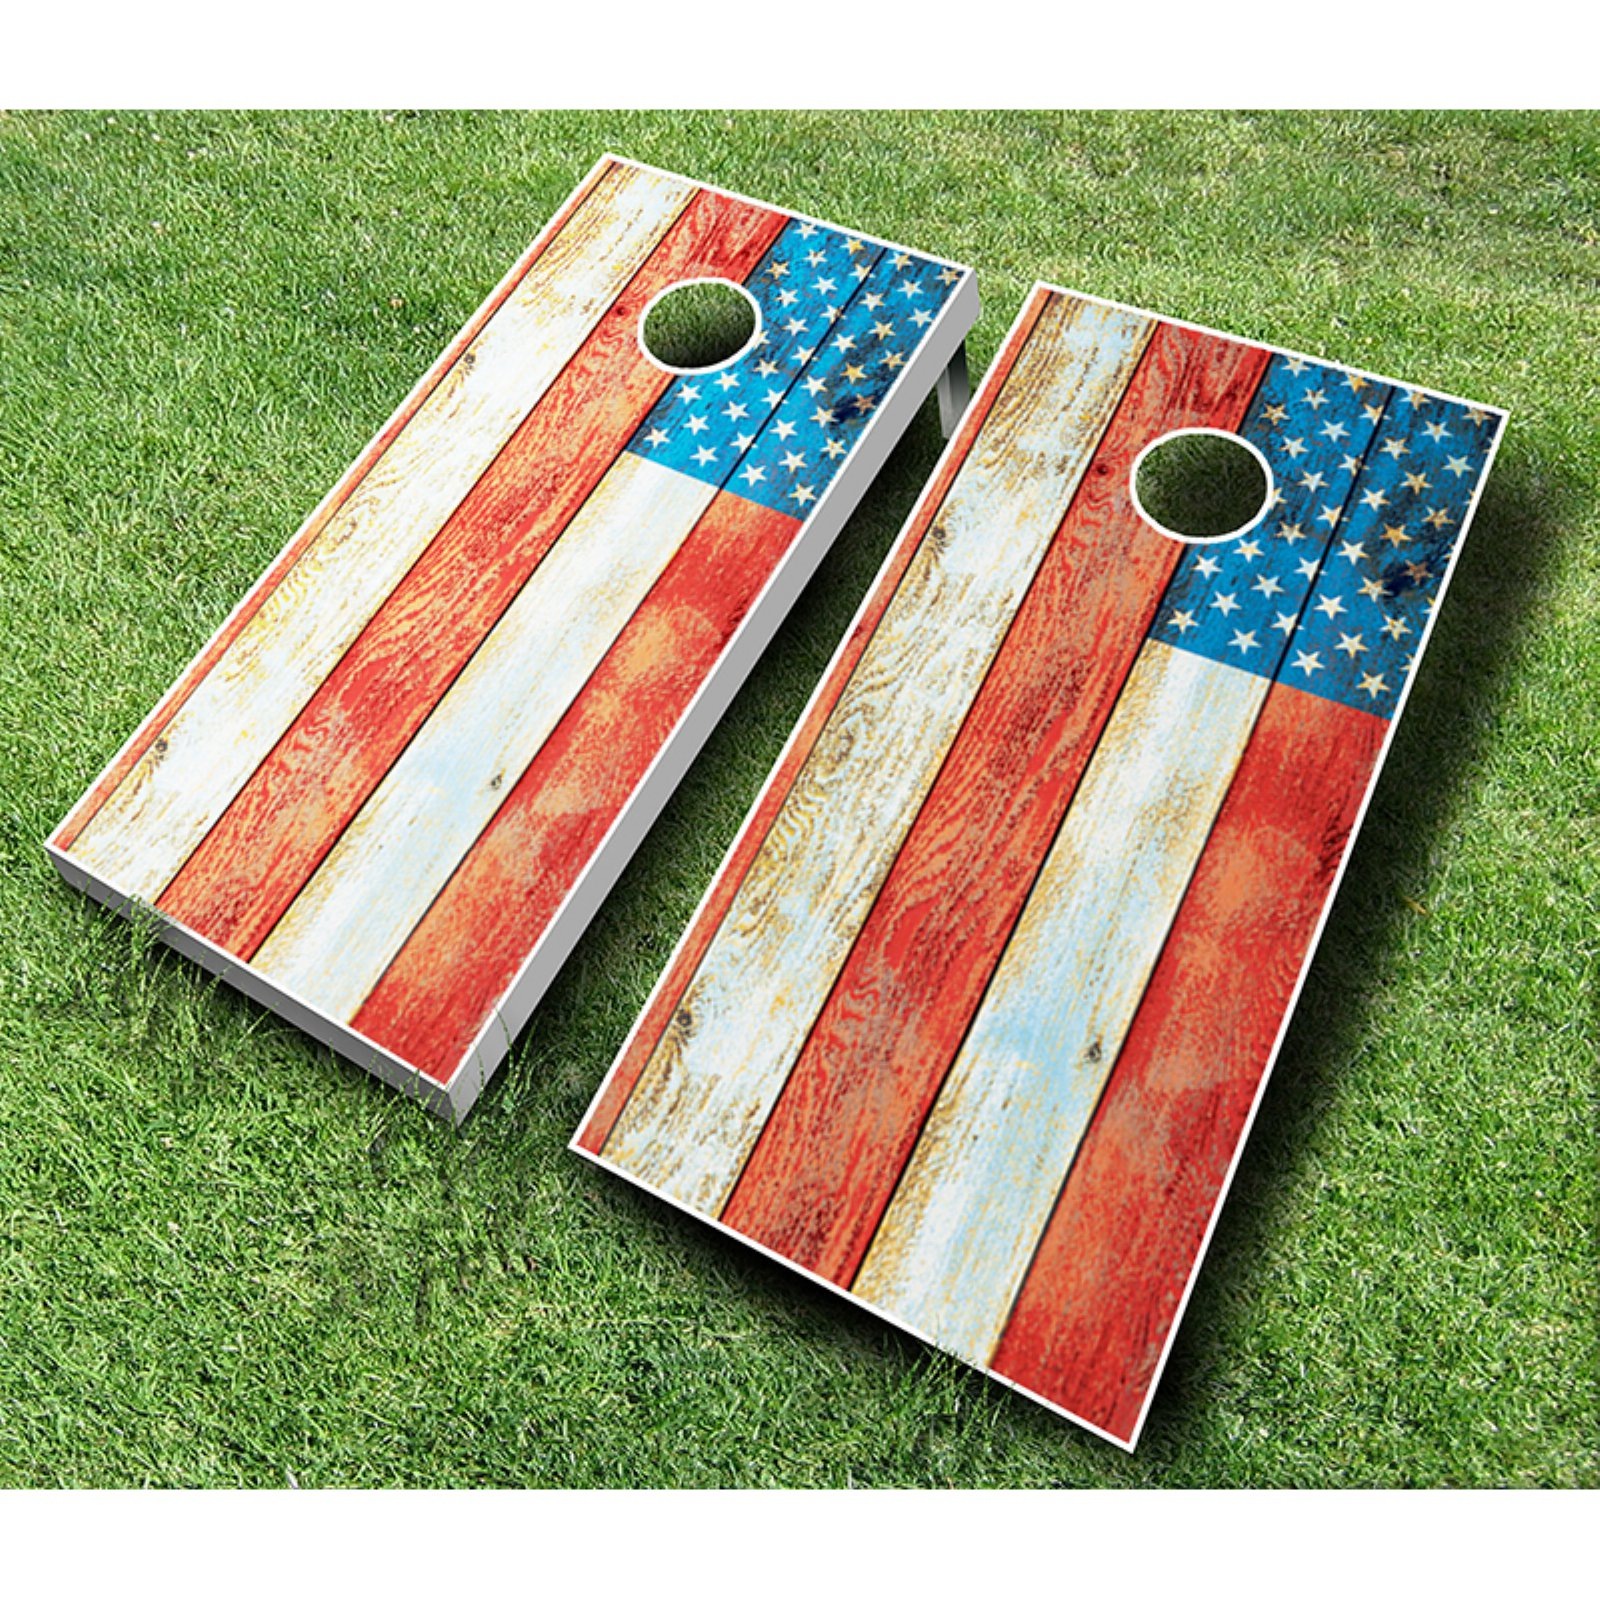 Click here to buy AJJ Cornhole Distressed American Flag Tournament Cornhole Set by AJJ Cornhole.